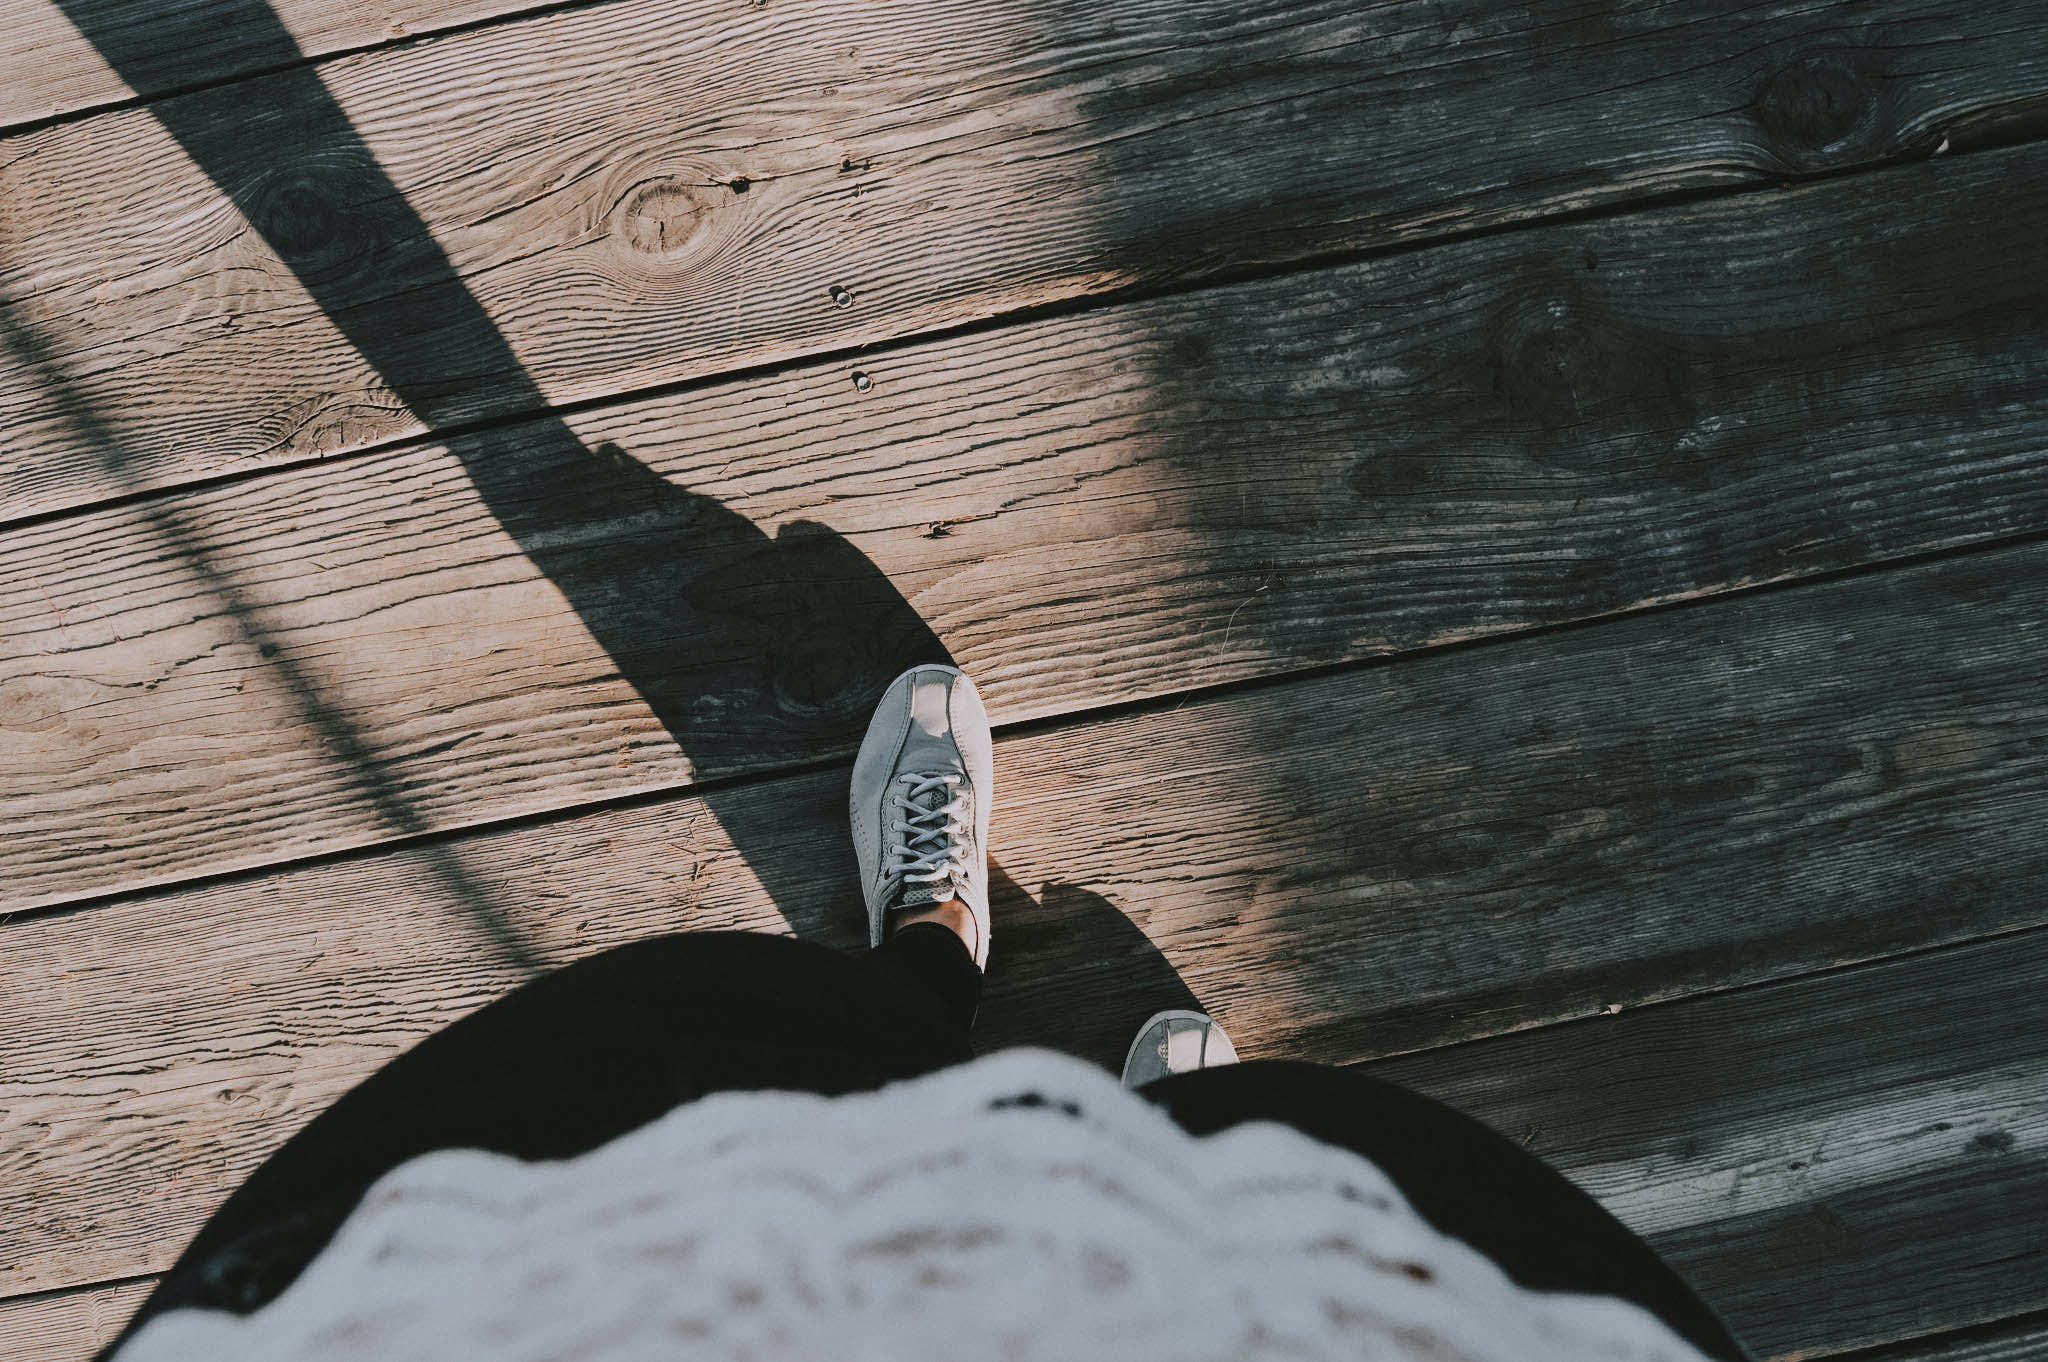 Person Wearing White Lace-up Shoes